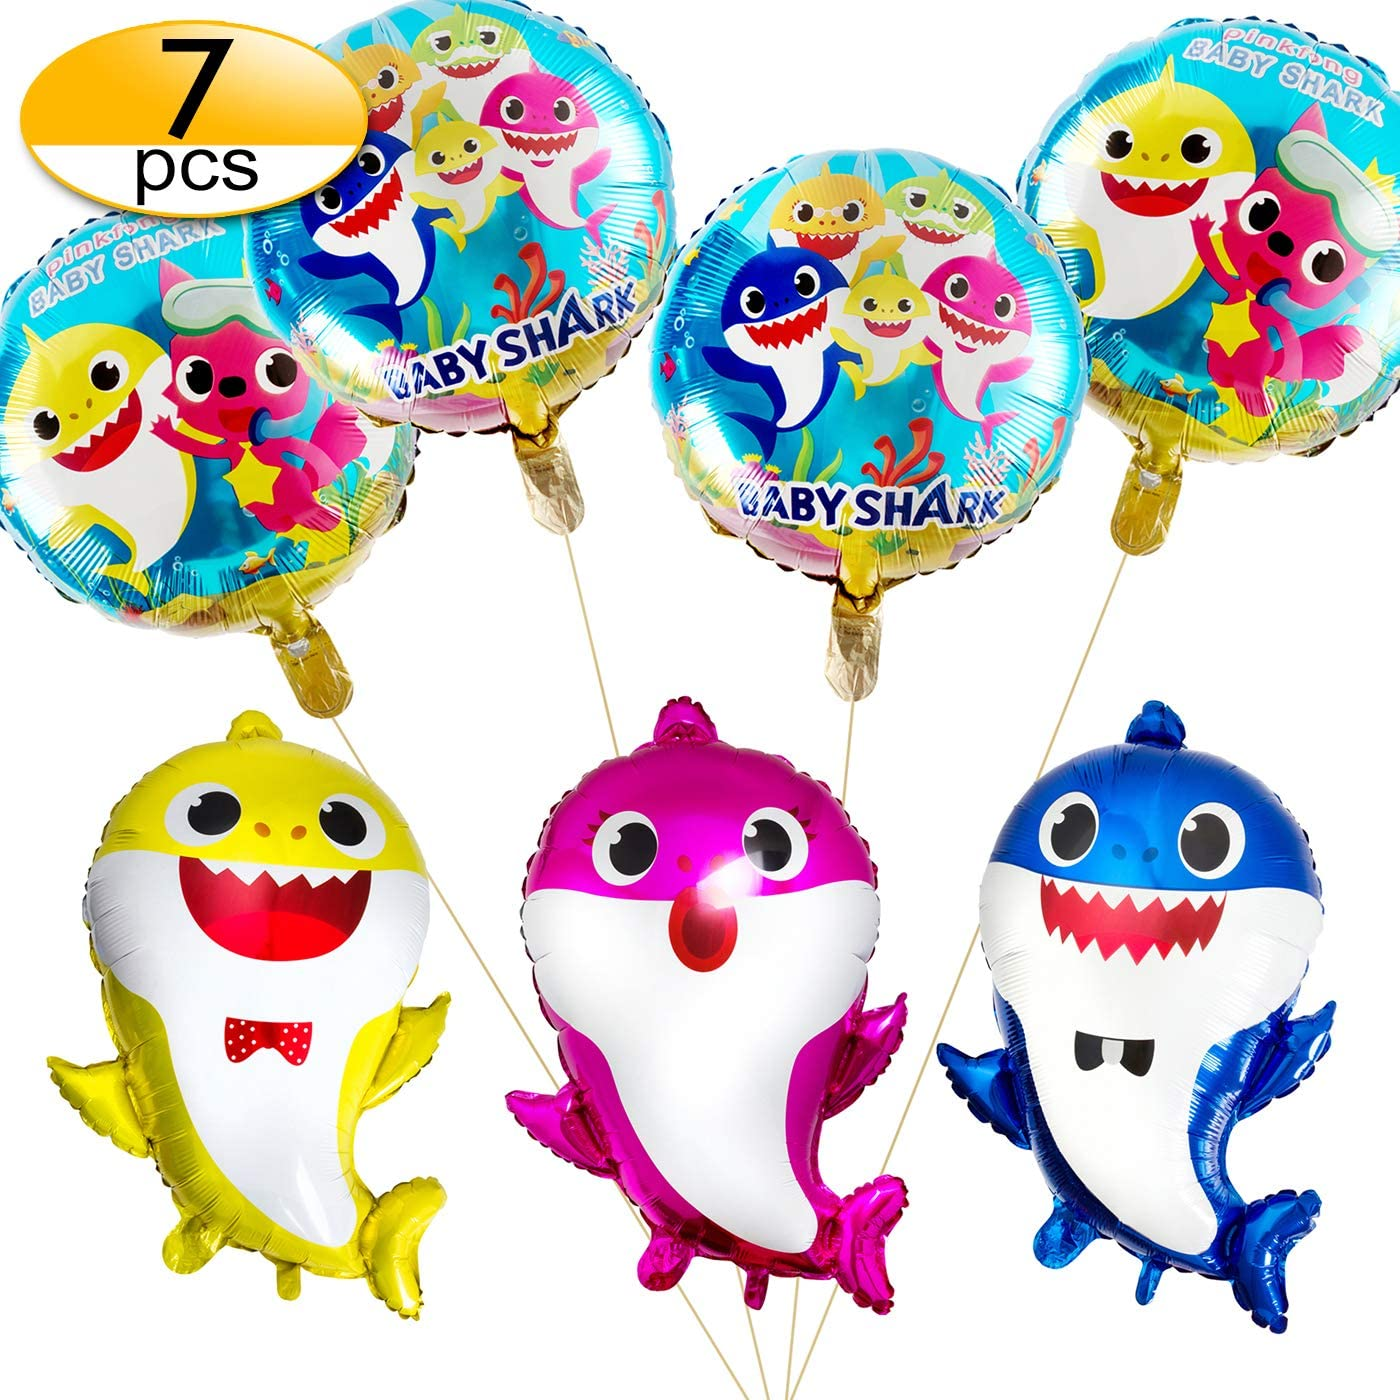 7 pcs Baby Shark Balloons, Baby Cute Shark Party Supplies Foil Balloons for Baby Birthday, Baby Shower Children Birthday Party Decorations